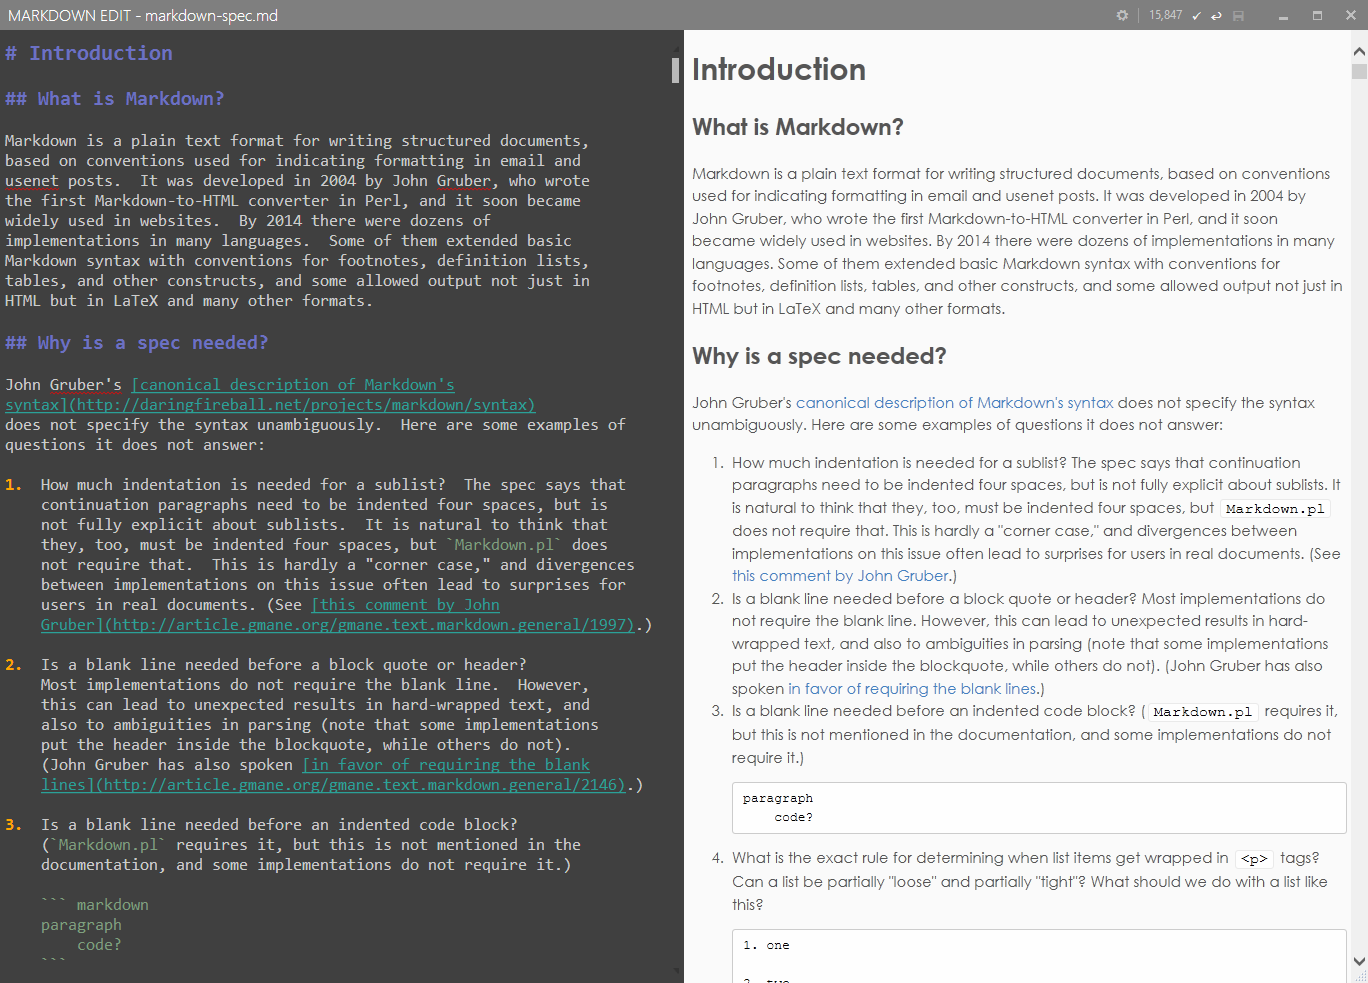 markdown-edit-screenshot.png